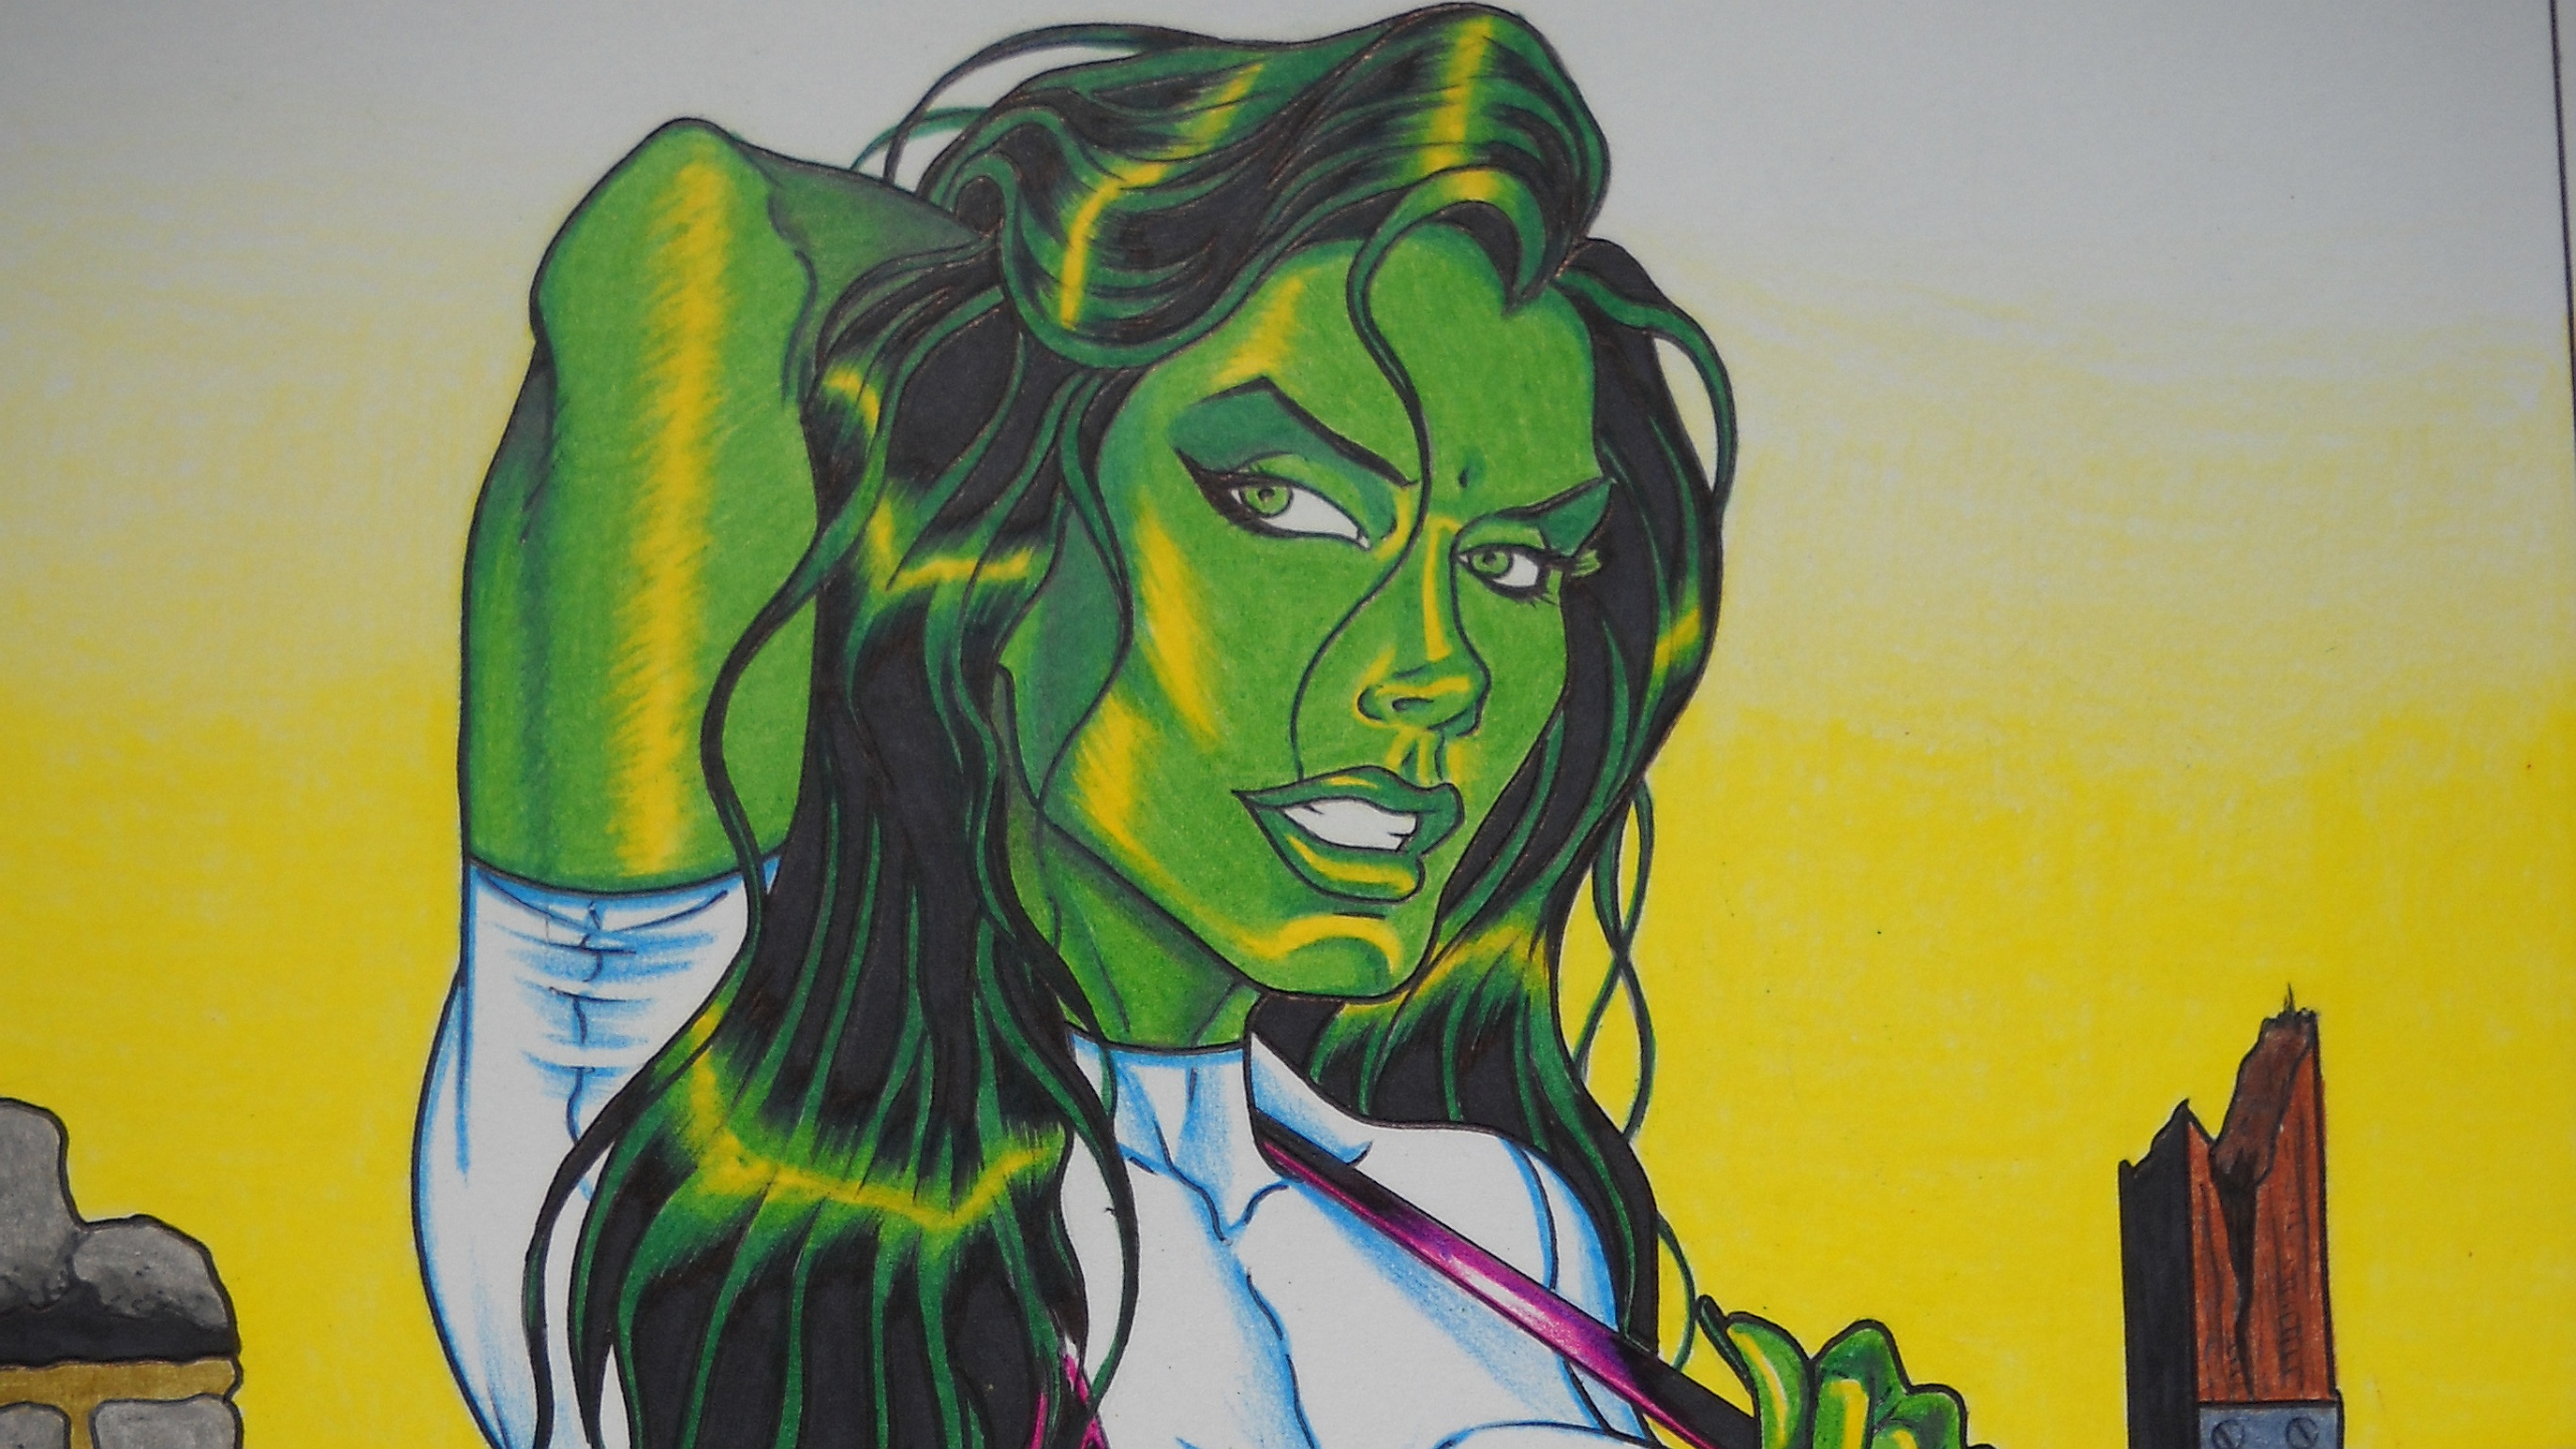 She Hulk Wallpaper Desktop 2750x1547